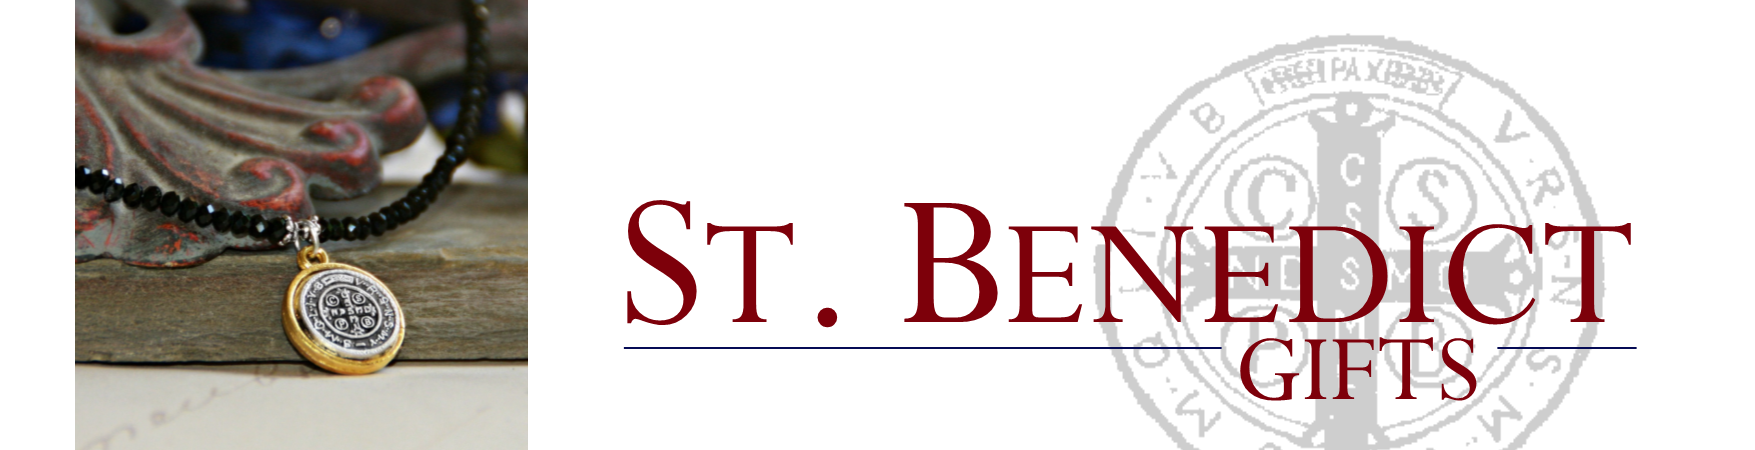 St. Benedict Gifts